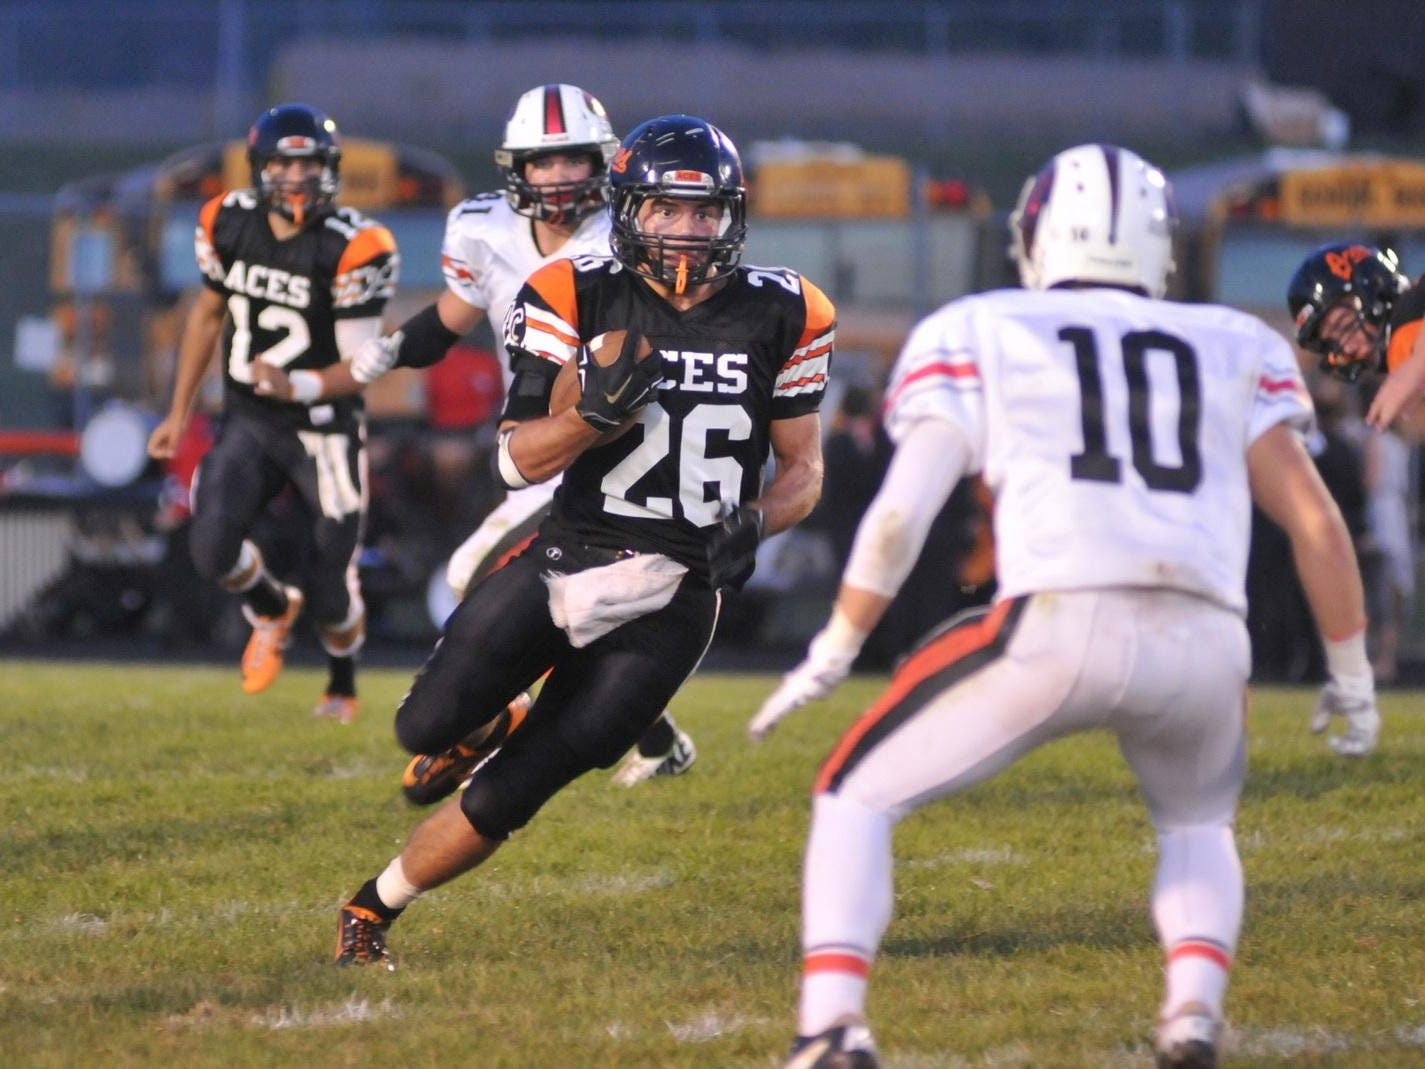 Amanda-Clearcreek's Jordan Leasure is The Eagle-Gazette's 2015 Male Athlete of the Year.